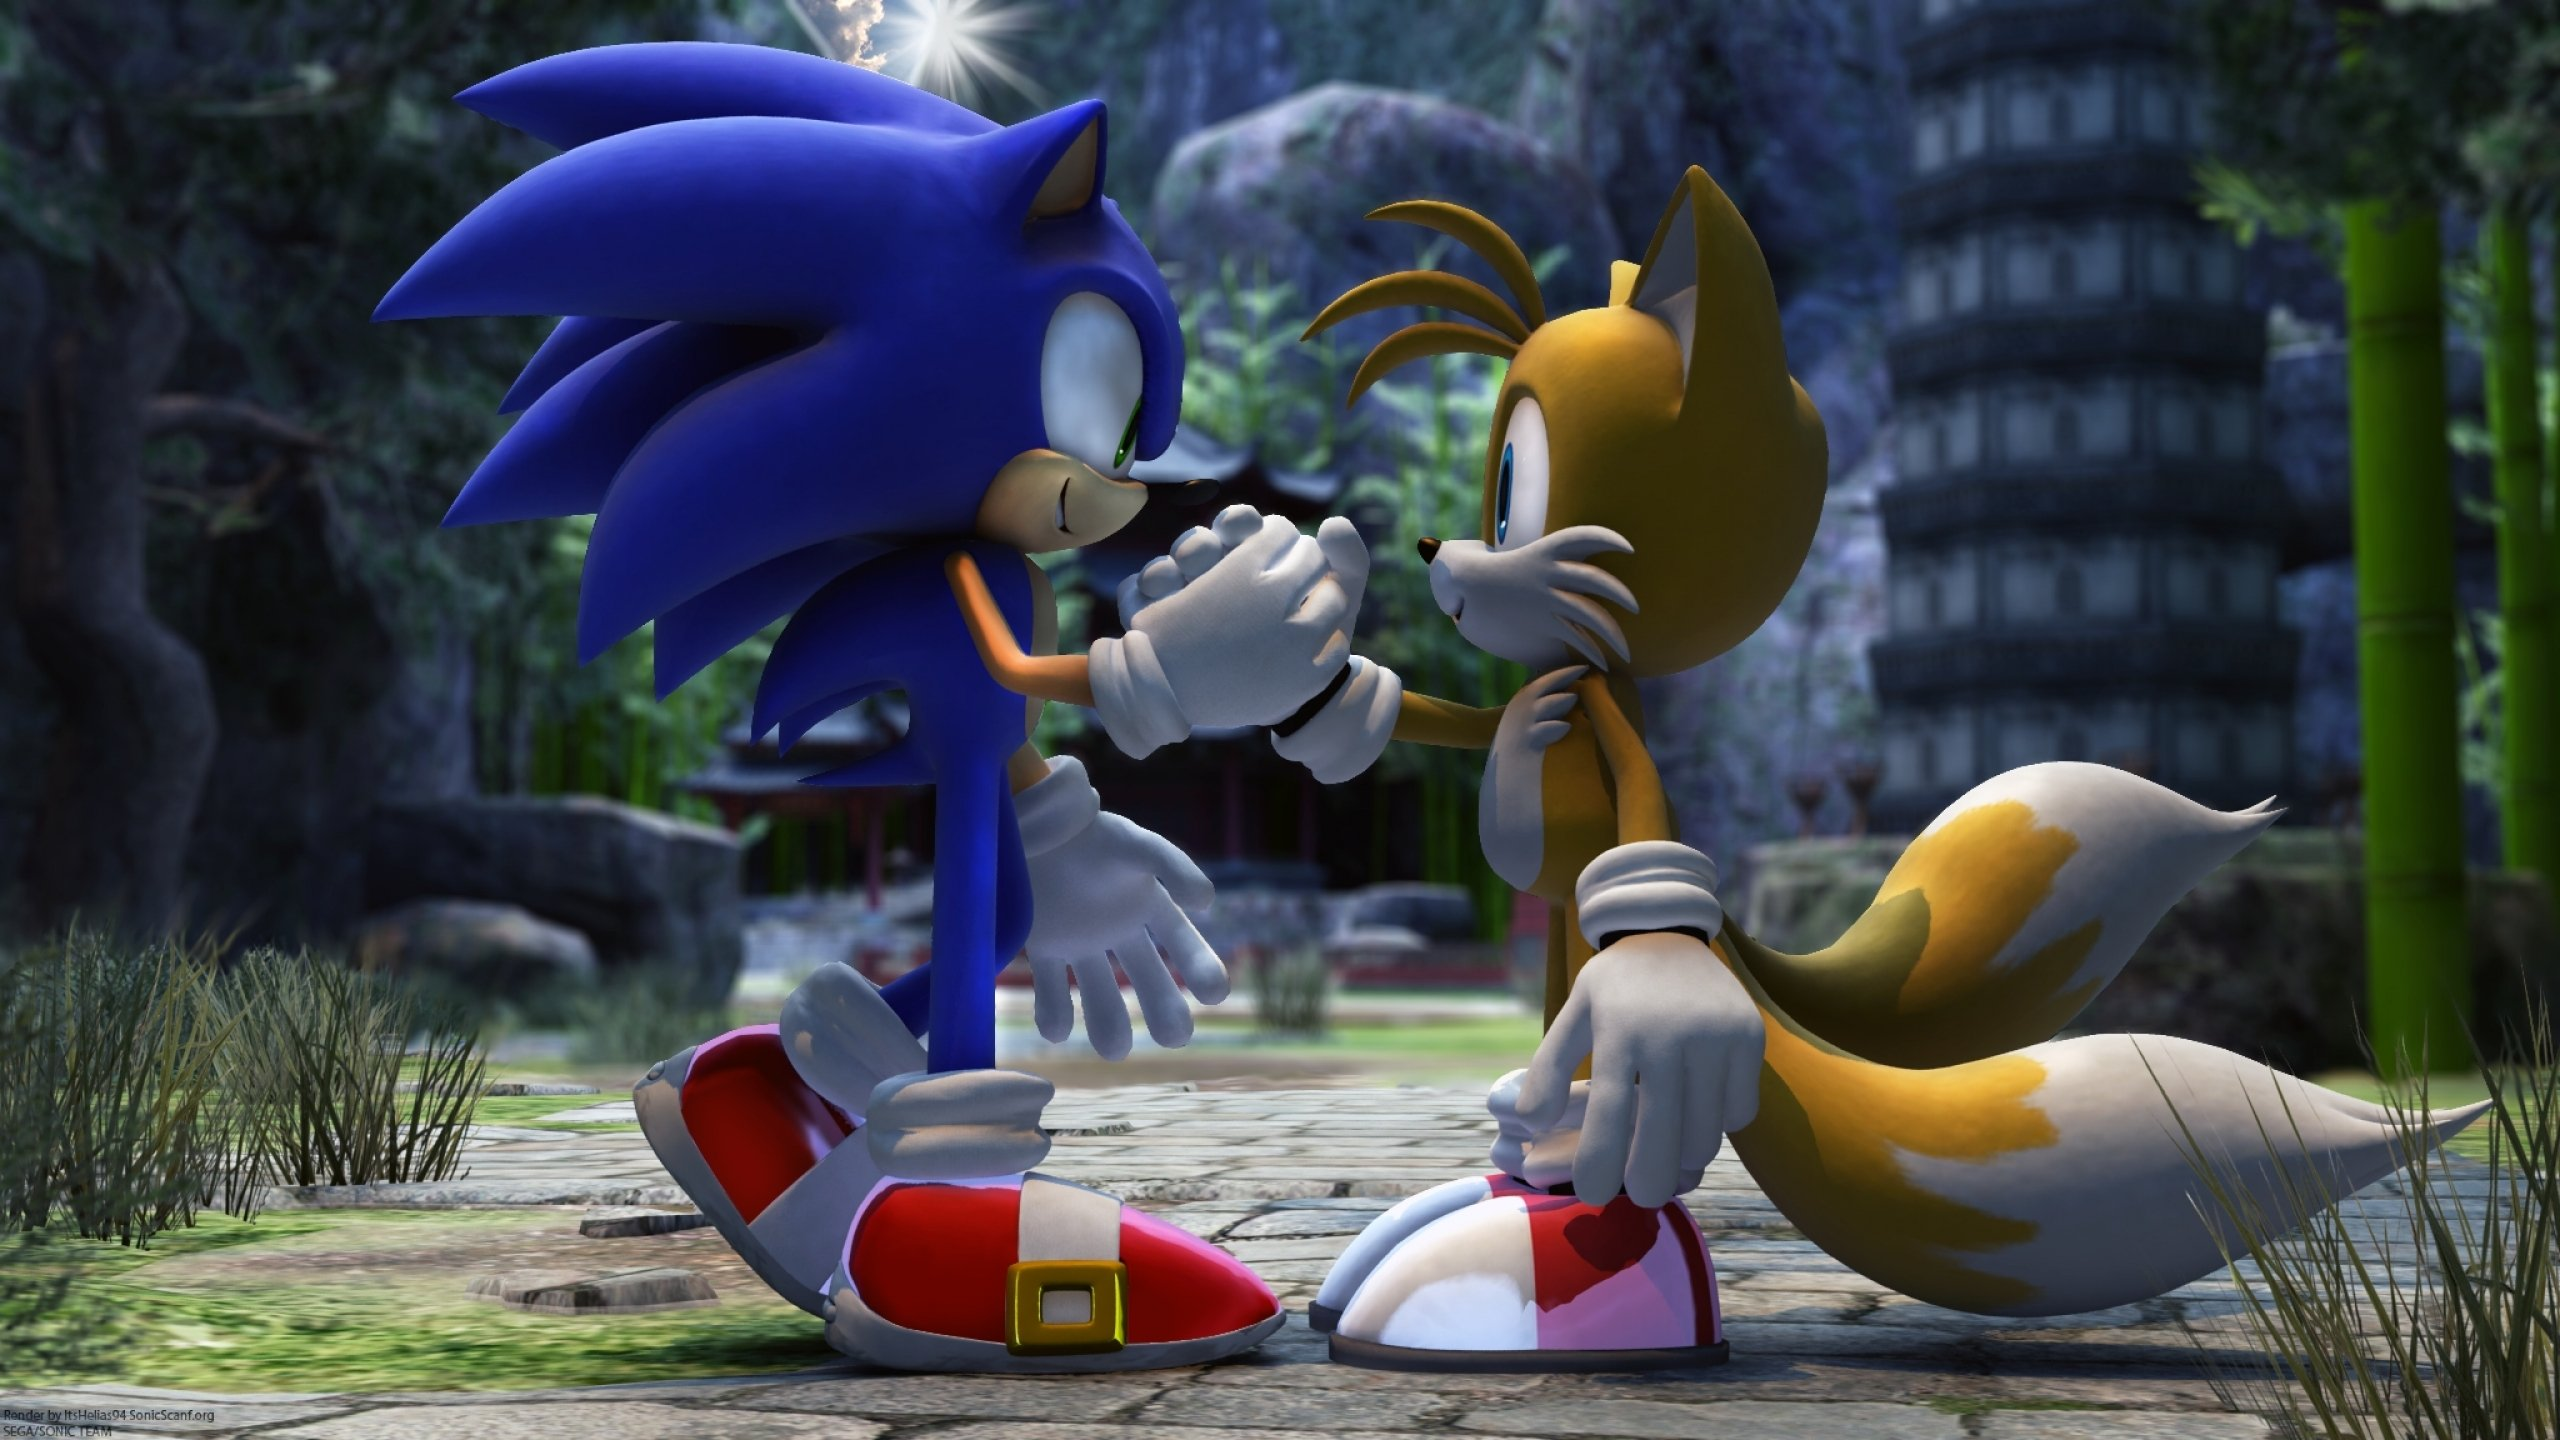 Cute Cartoon Horse Wallpaper Download Sonic And Tails Wallpaper Gallery